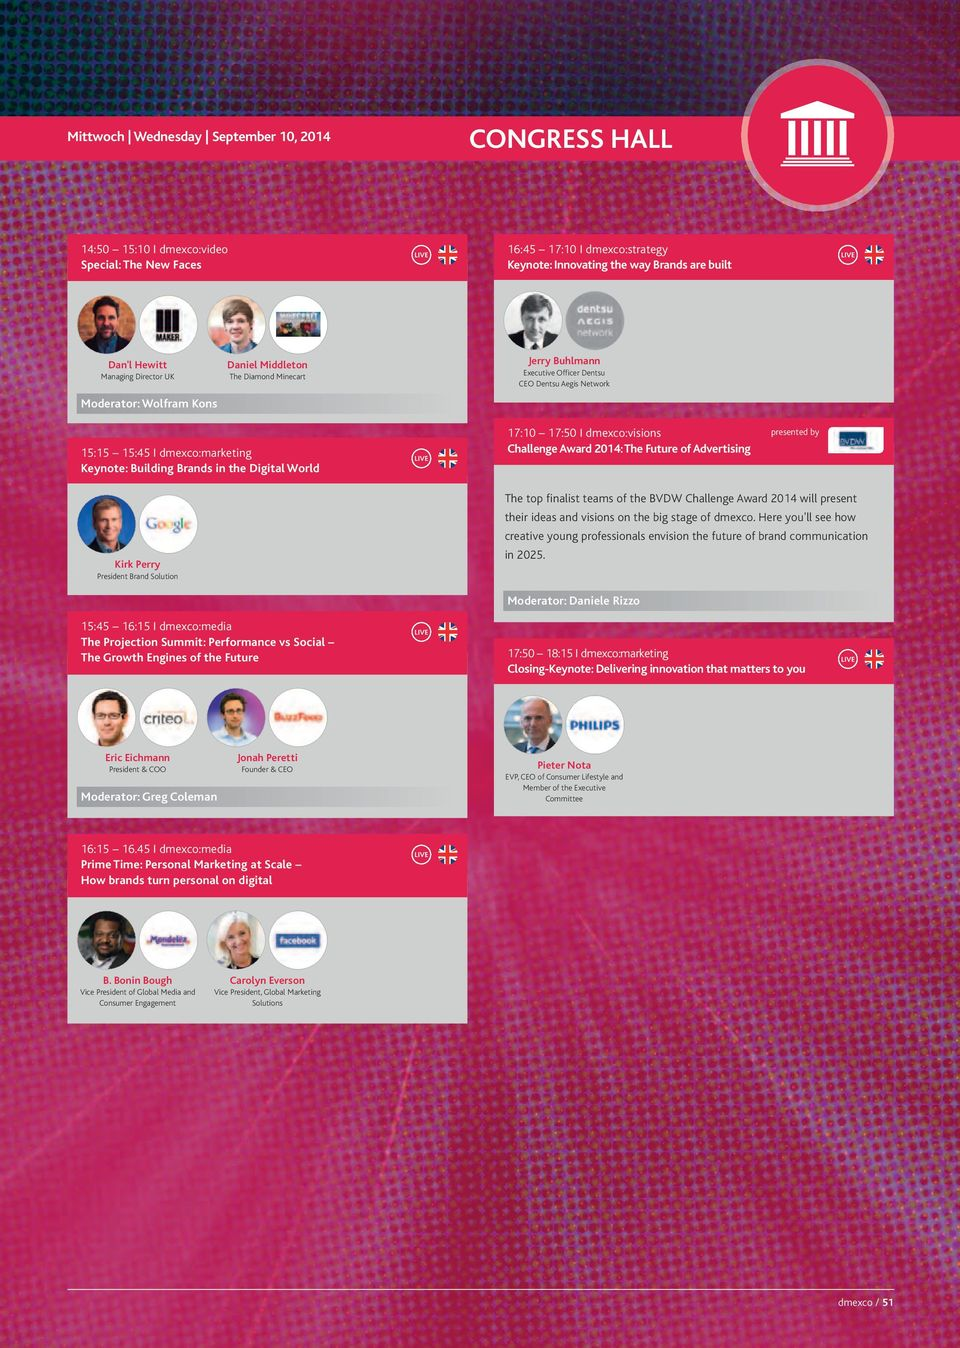 I dmexco:visions Challenge Award 2014: The Future of Advertising presented by Kirk Perry President Brand Solution The top finalist teams of the Challenge Award 2014 will present their ideas and